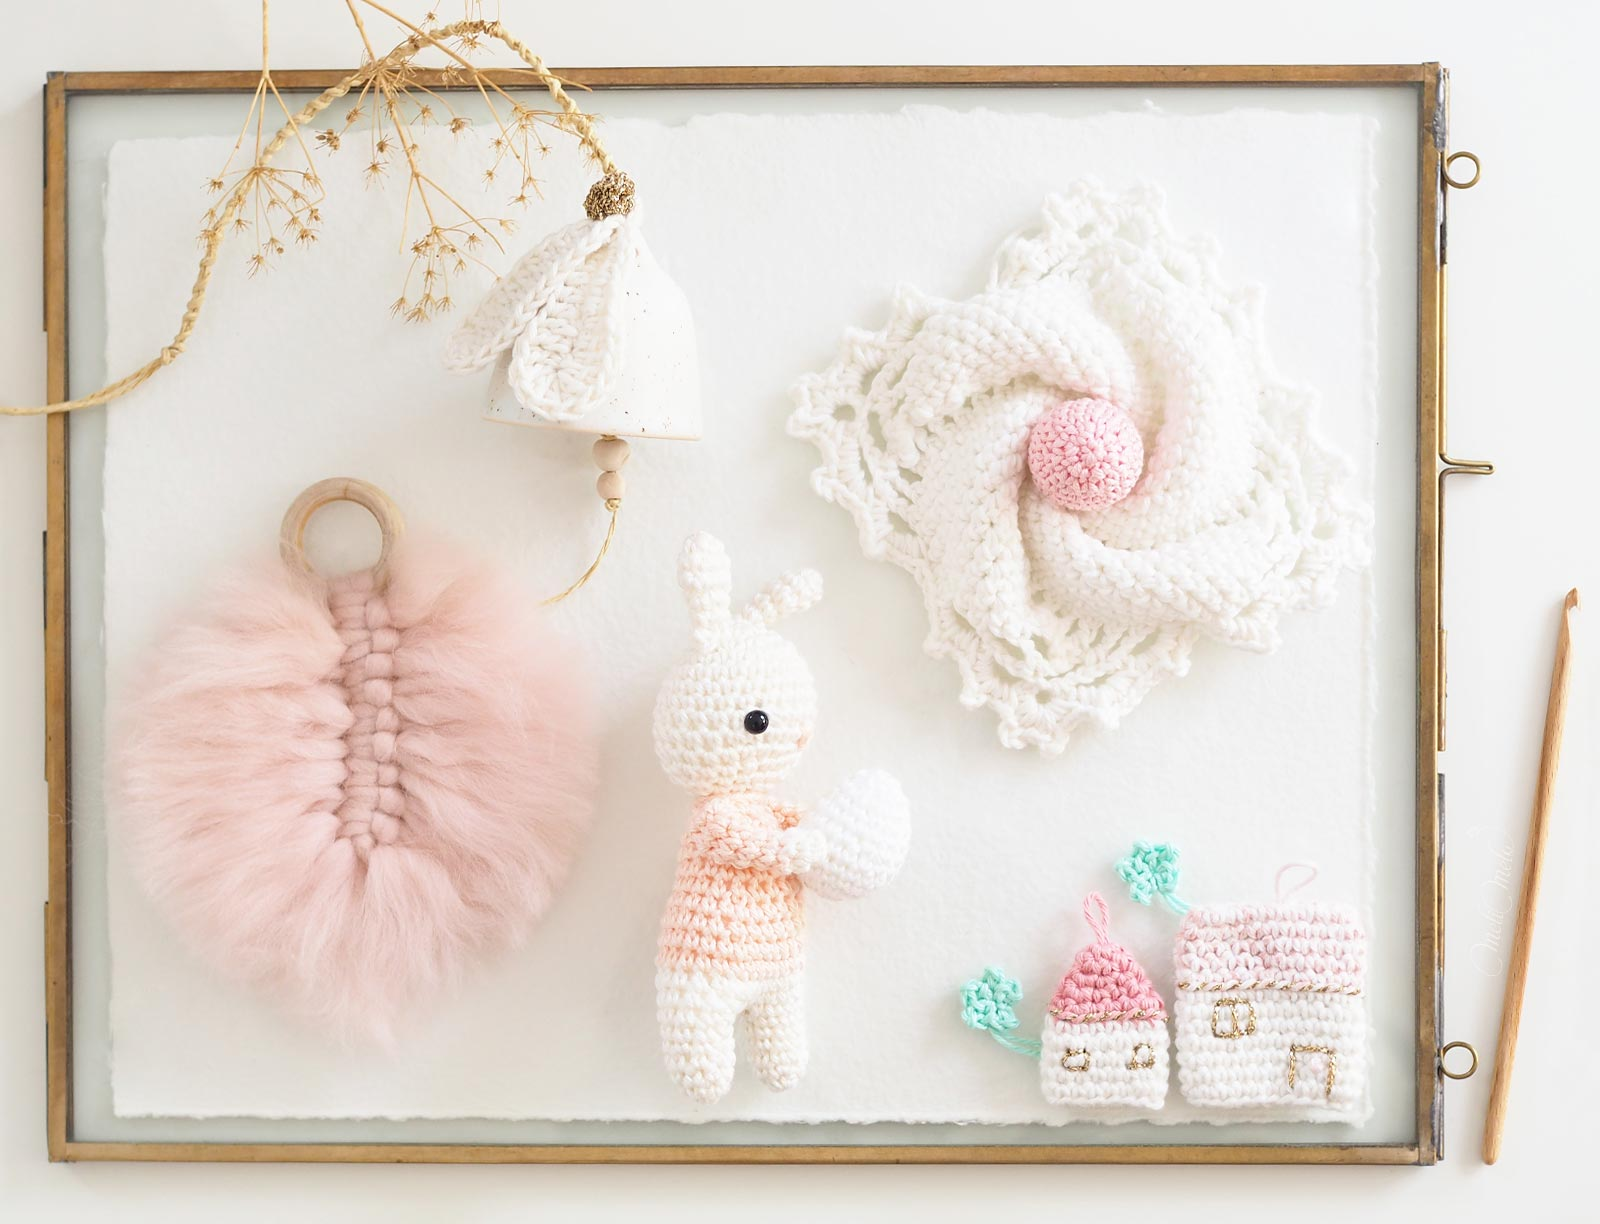 cadre-crochet-paques-lapin-oeuf-maison-plume-granny-cloche-laboutiquedemelimelo